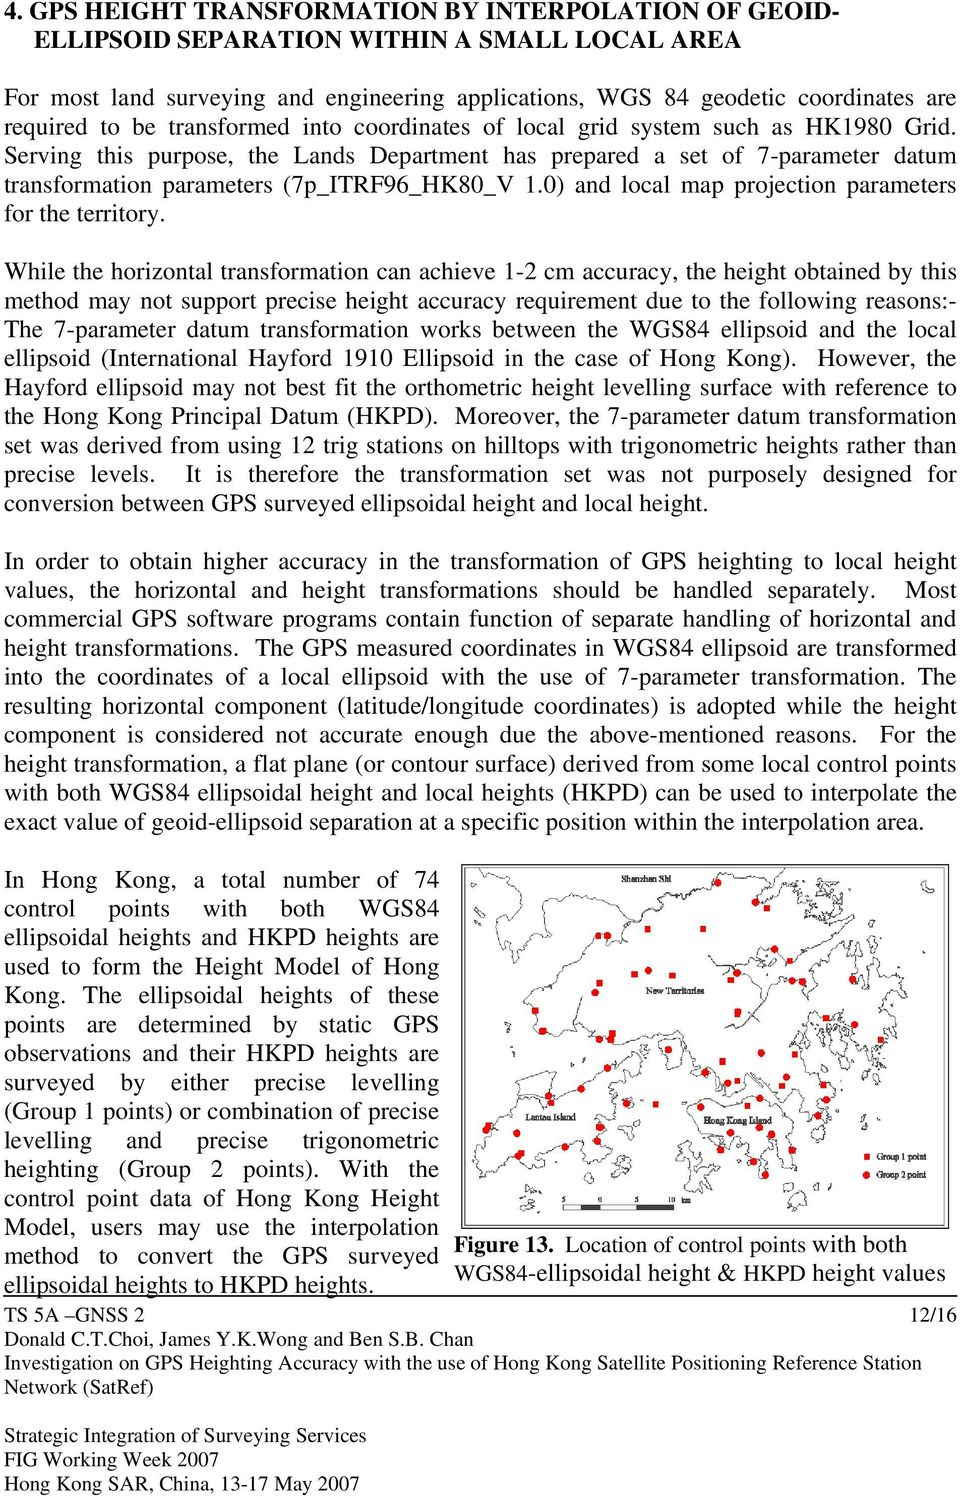 Investigation on GPS Heighting Accuracy with the use of Hong